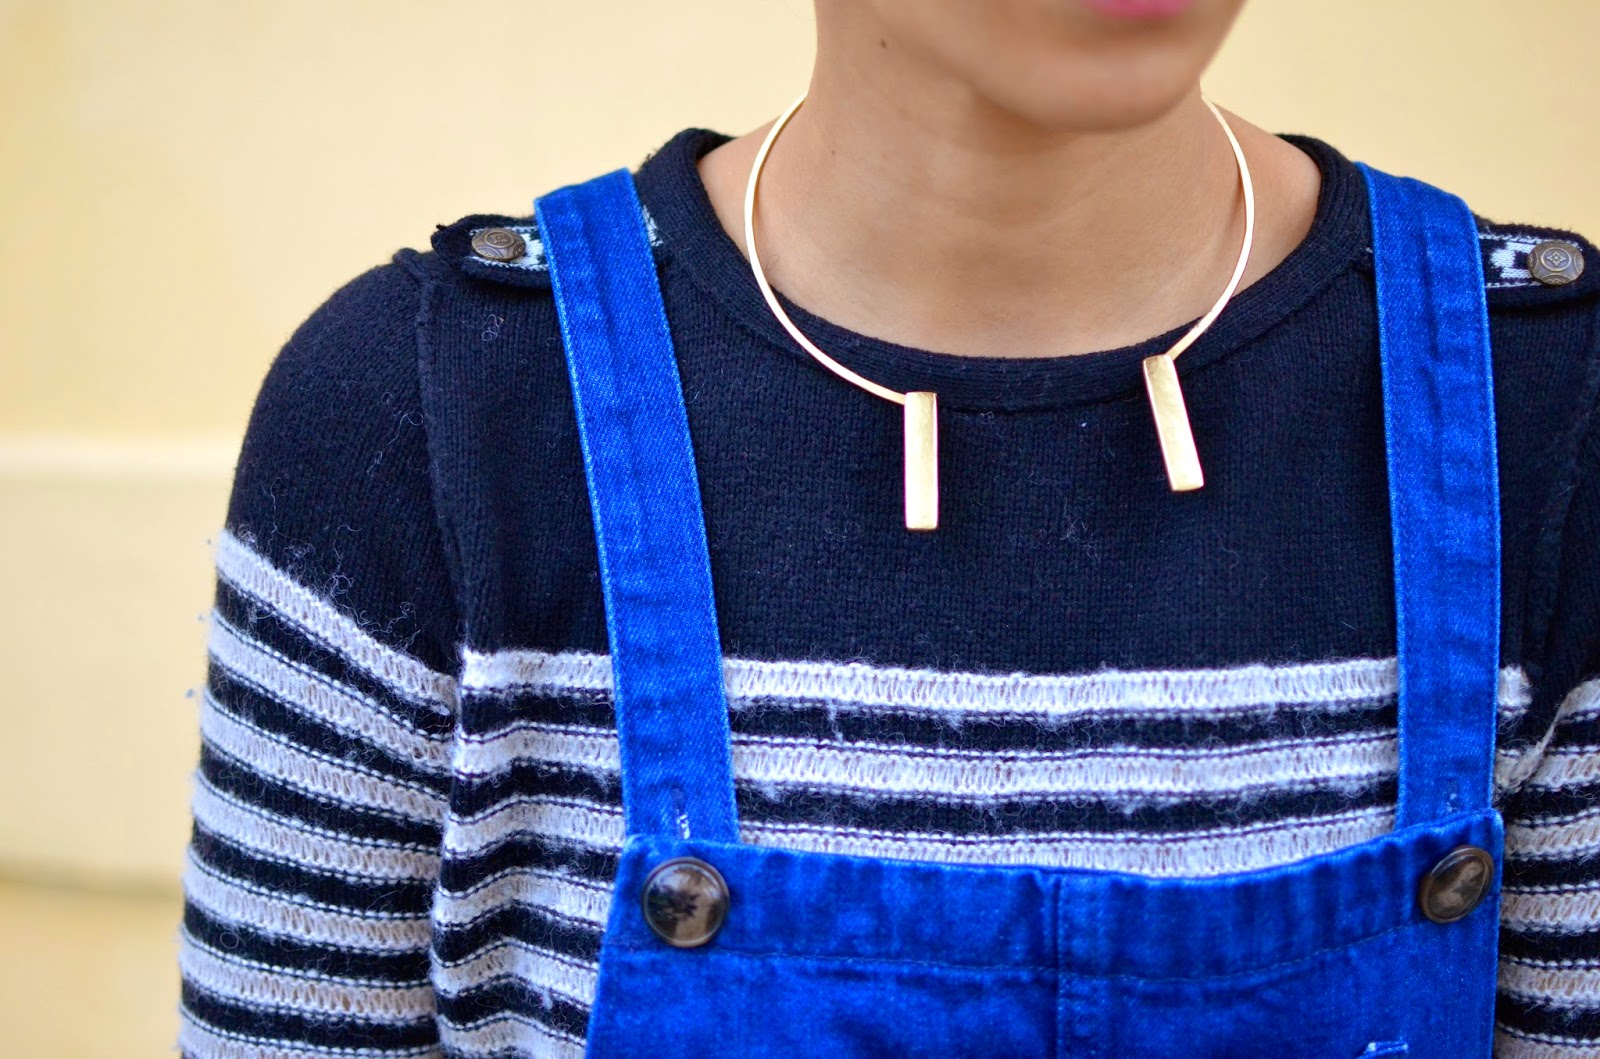 2Bandits necklace, striped sweater, denim overalls